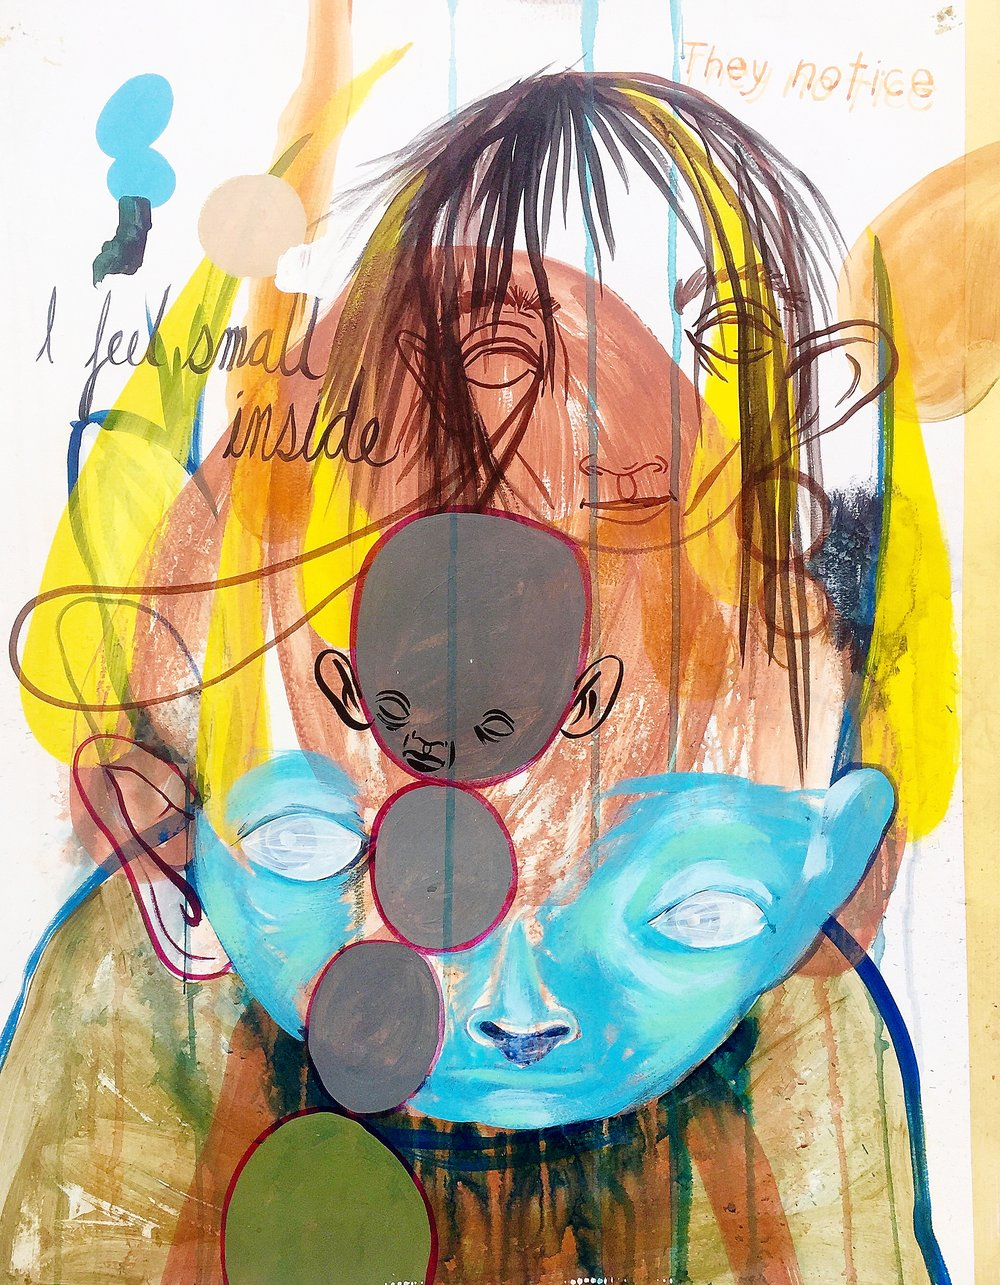 They Notice     Mixed media on paper  2005  19 x 24 In  $4,500.00